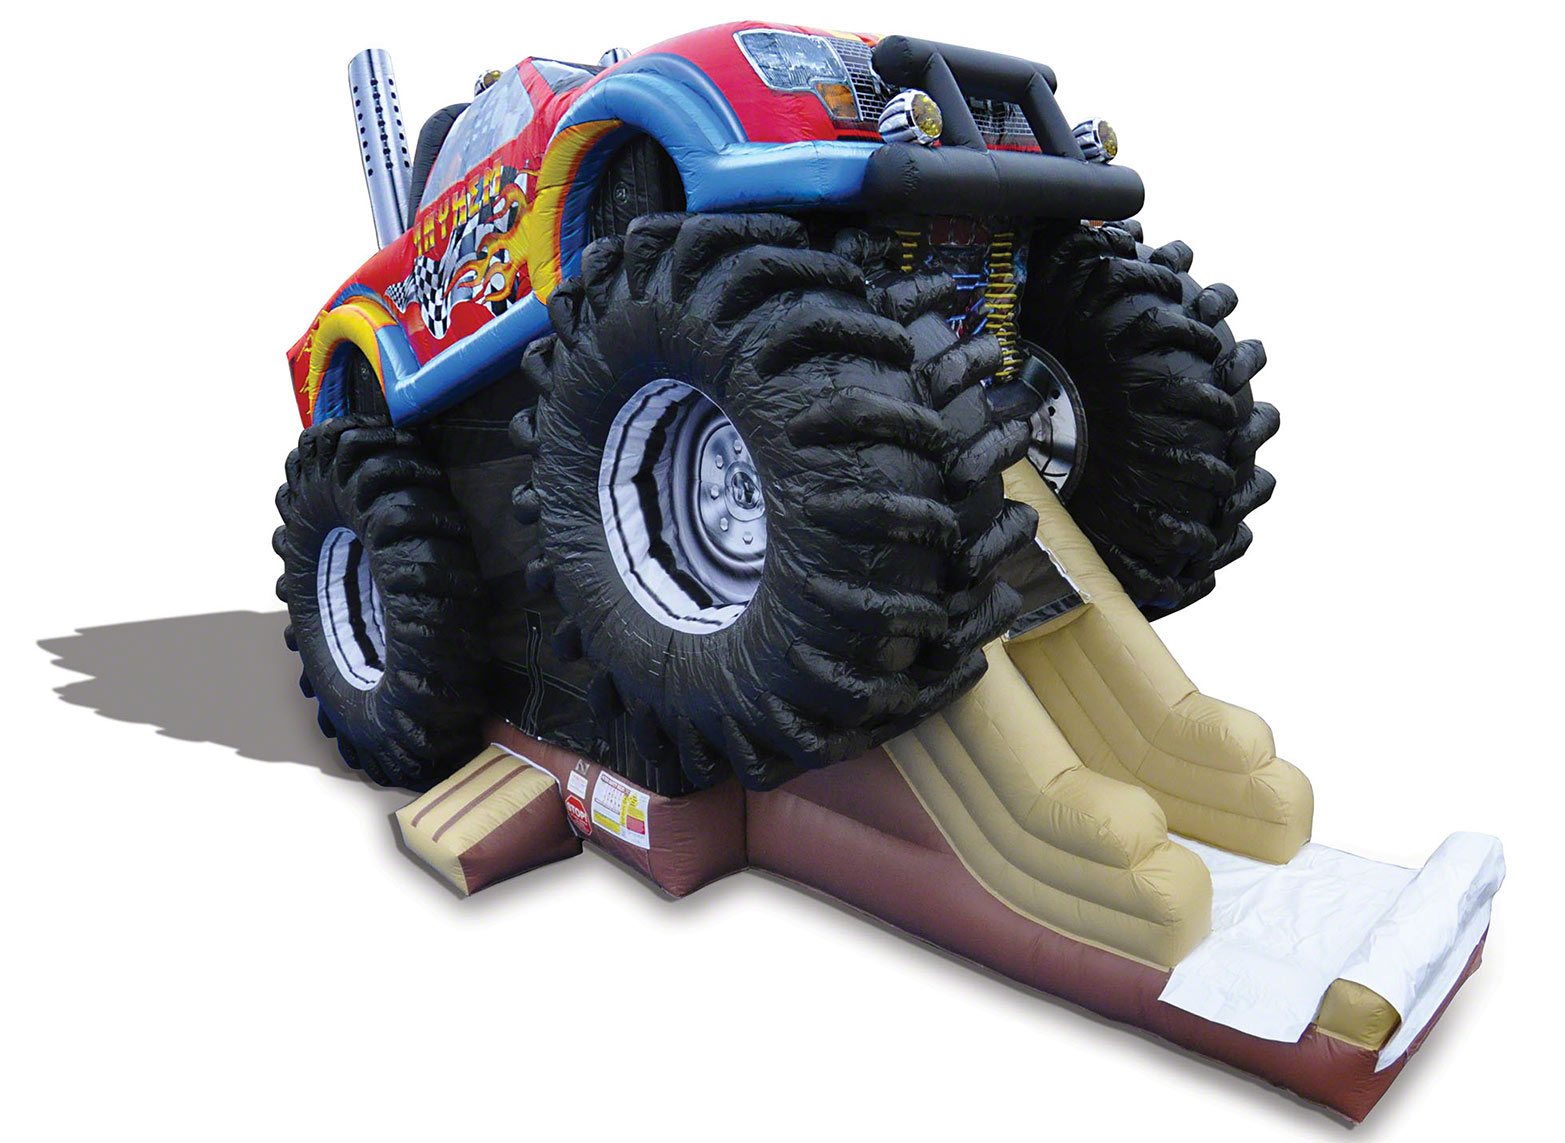 slide down our new monster truck inflatable!